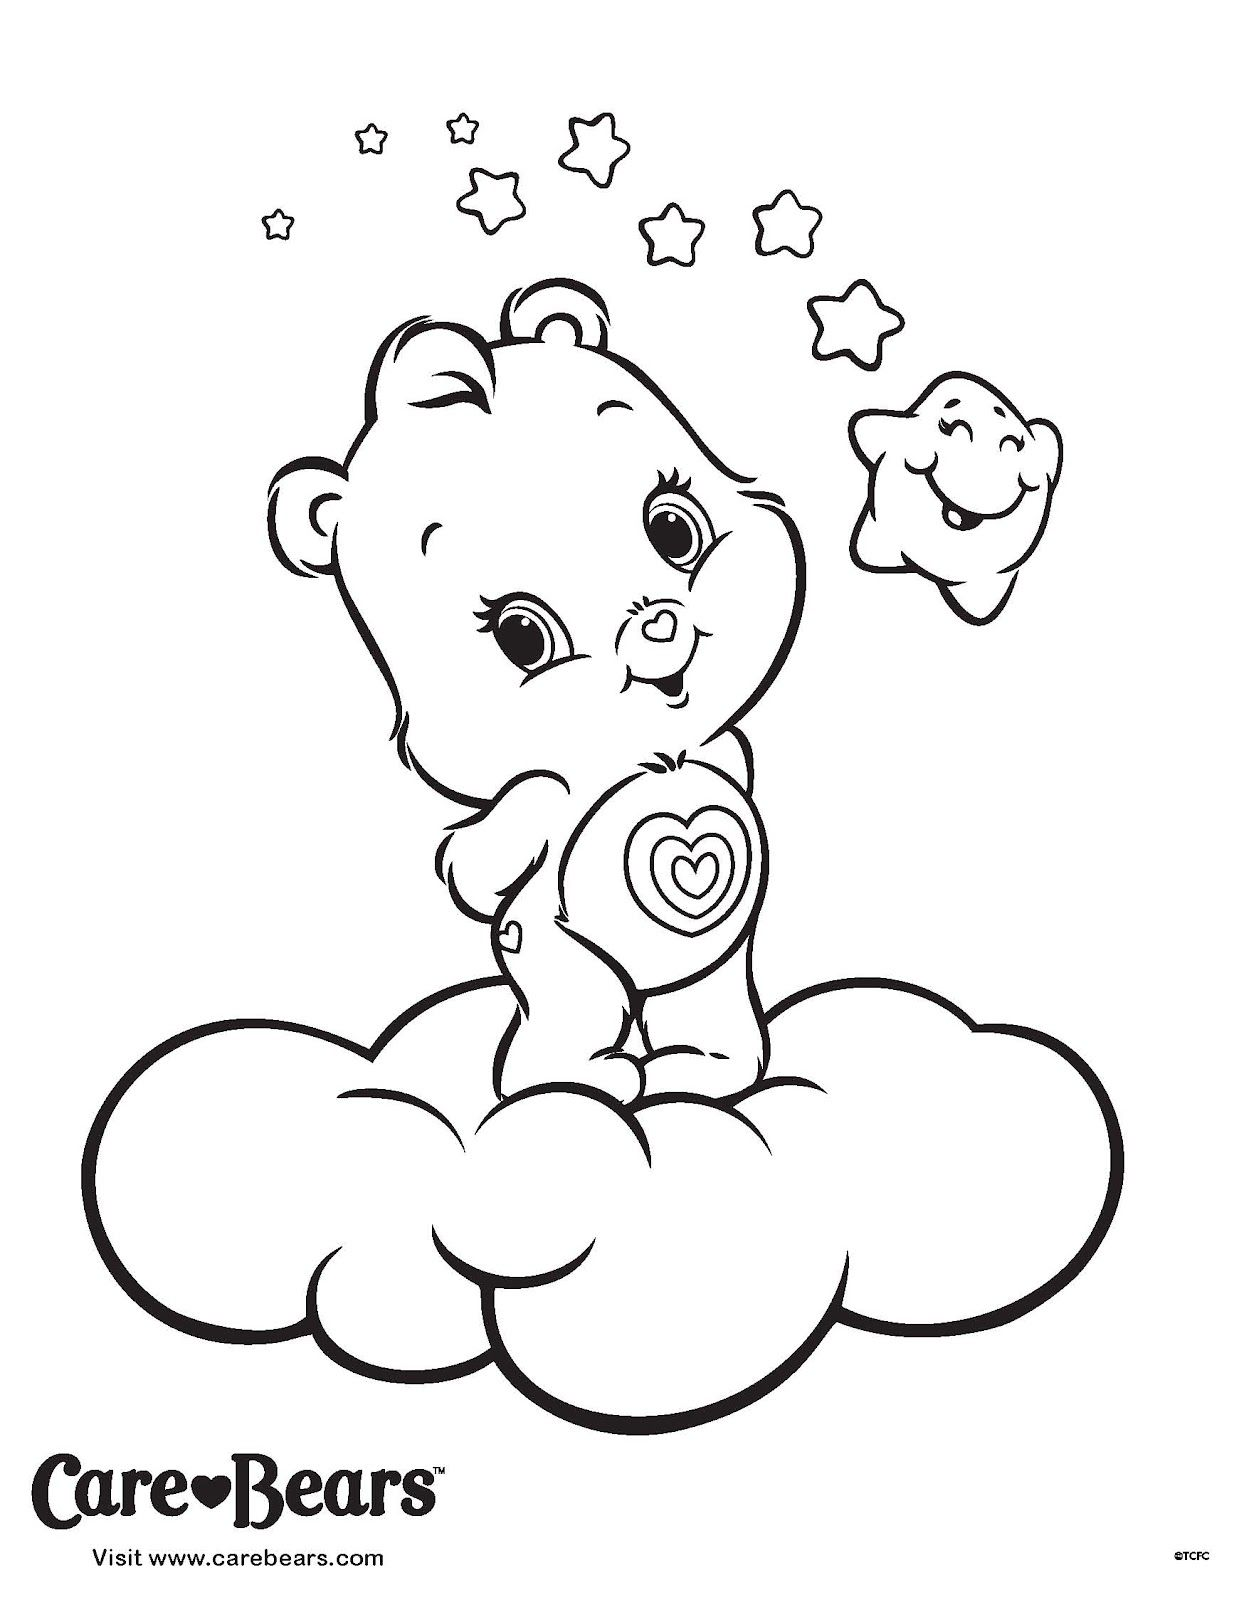 Care Bears Wonderheart Coloring Printable Page Bear Coloring Pages Coloring Pages Free Printable Coloring